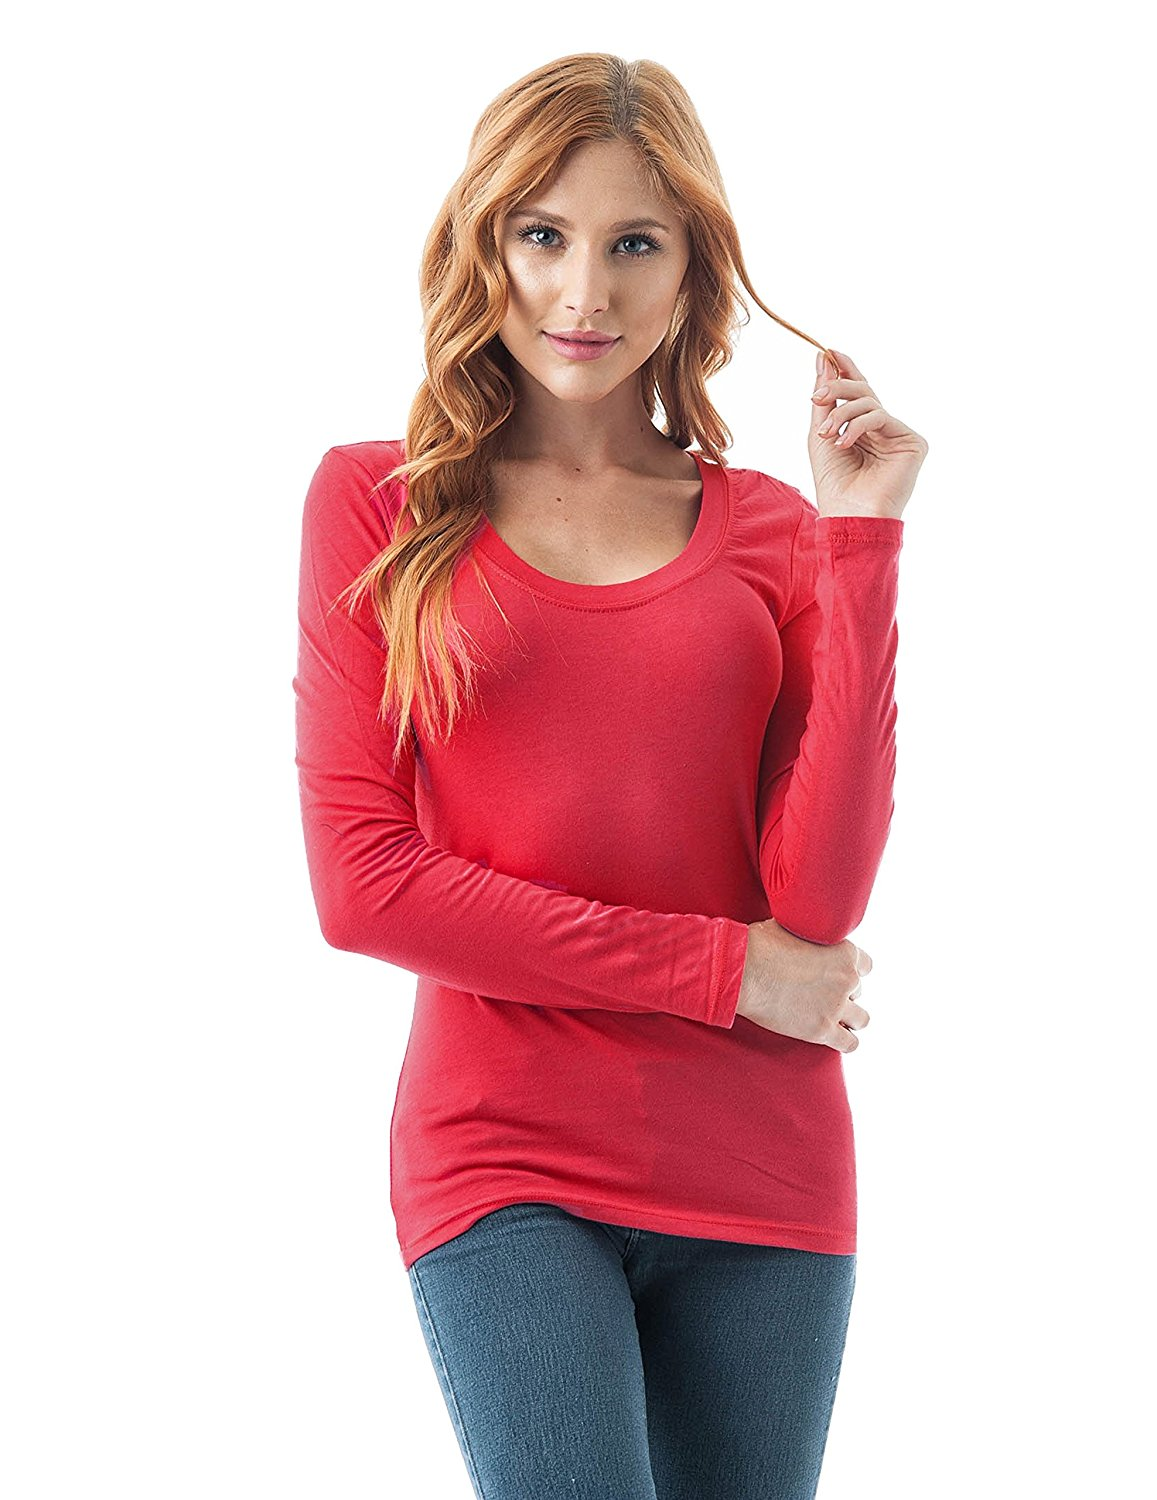 Khanomak Plain Casual Scoop Neck Long Sleeve Tee T-Shirt